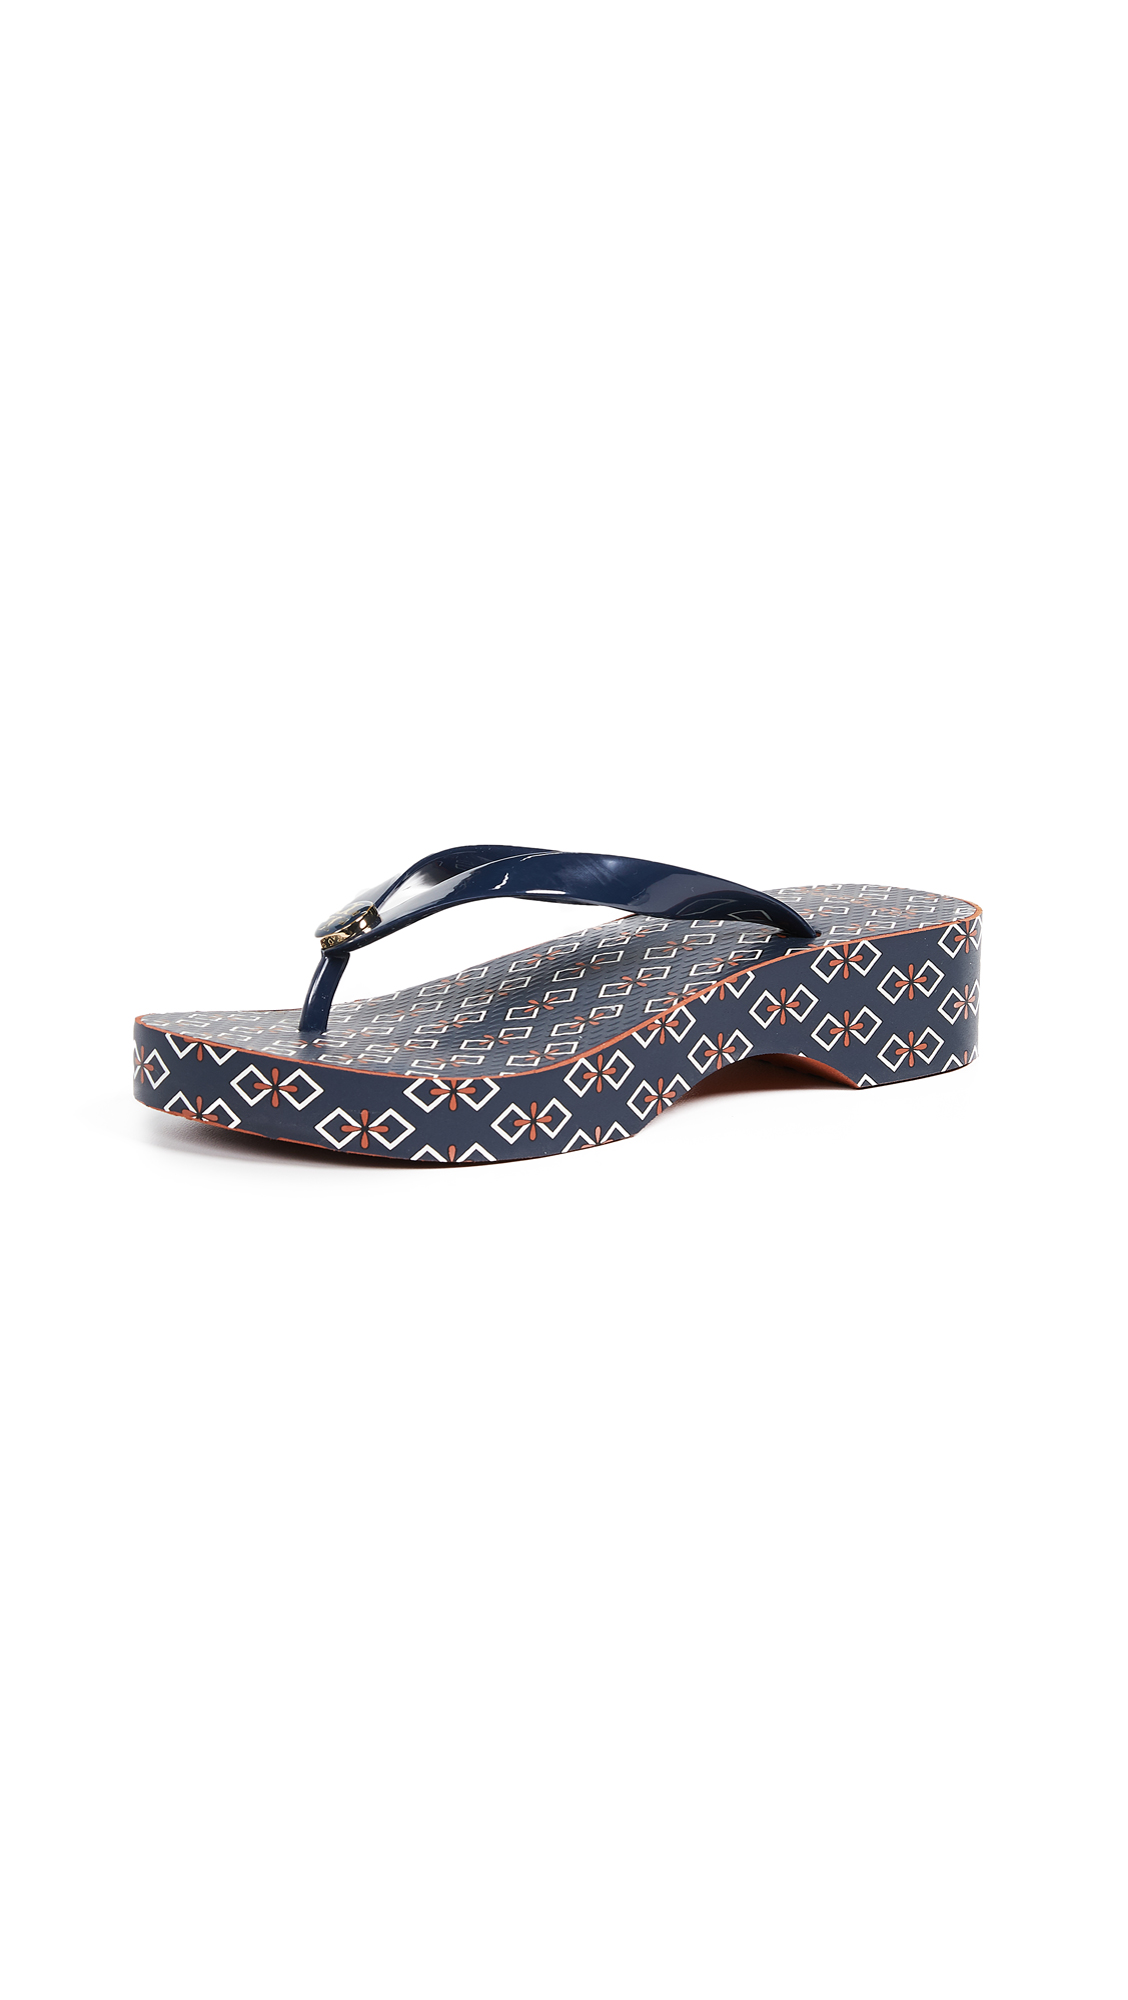 Tory Burch Cutout Wedge Flip Flops - Tory Navy/Deco Bouquet